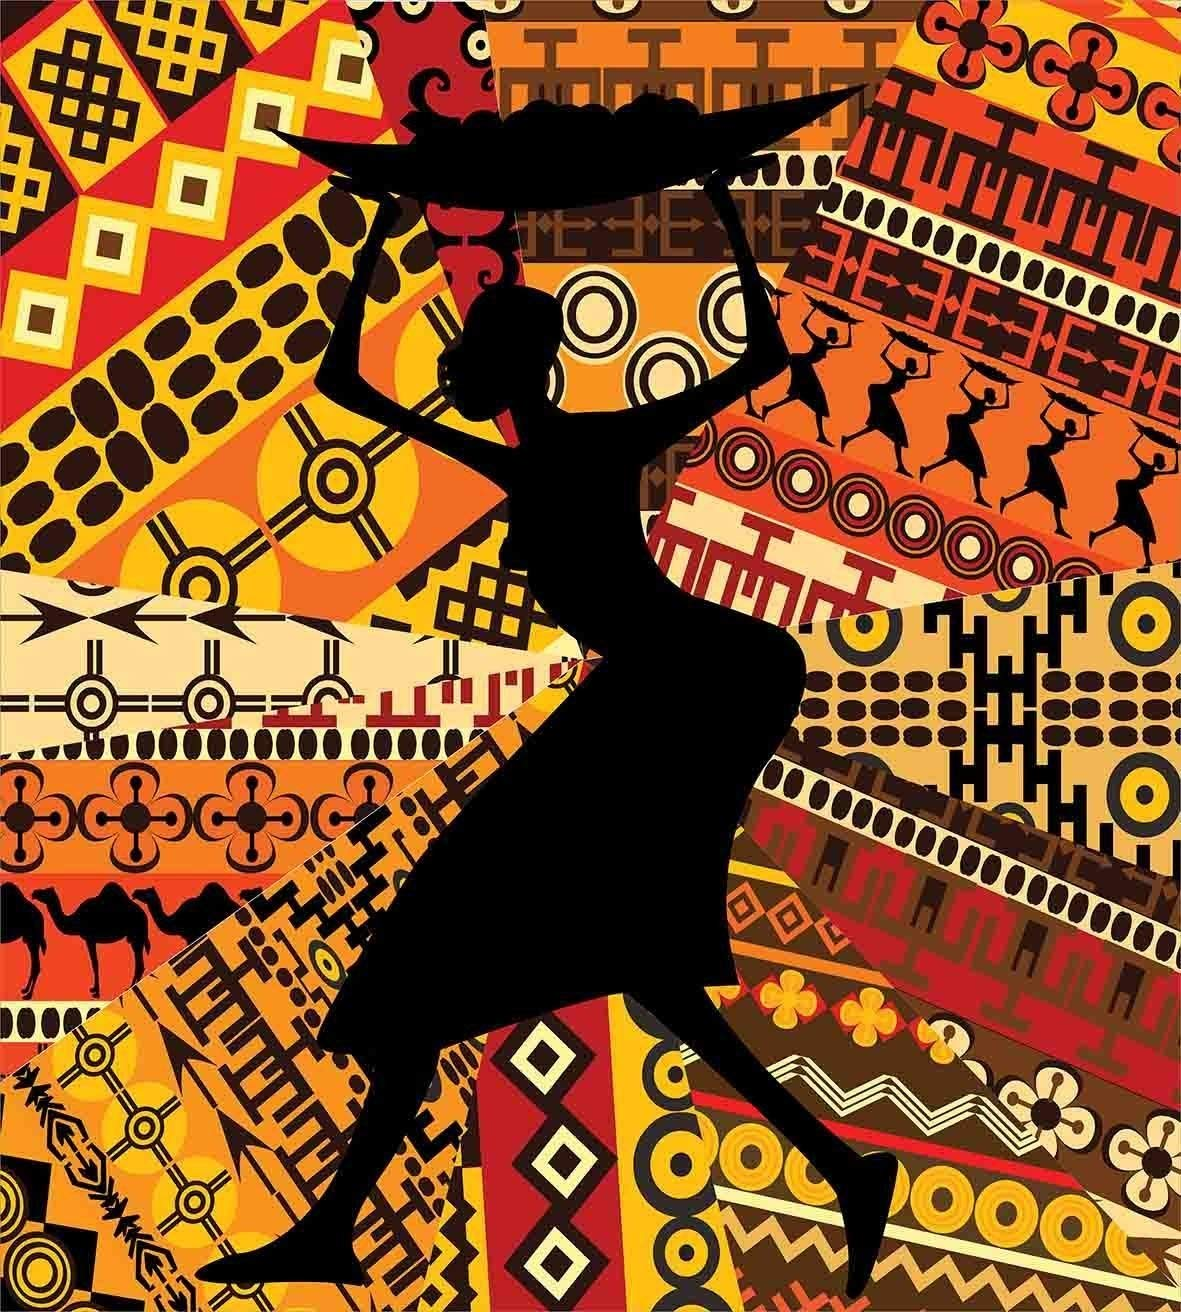 African Woman Full Size 4 Pcs Bedding Set, Silhouette of a Indigenous Woman Carrying a Basket on Traditional Patterns All Season Duvet Cover Bed Set, Multicolor